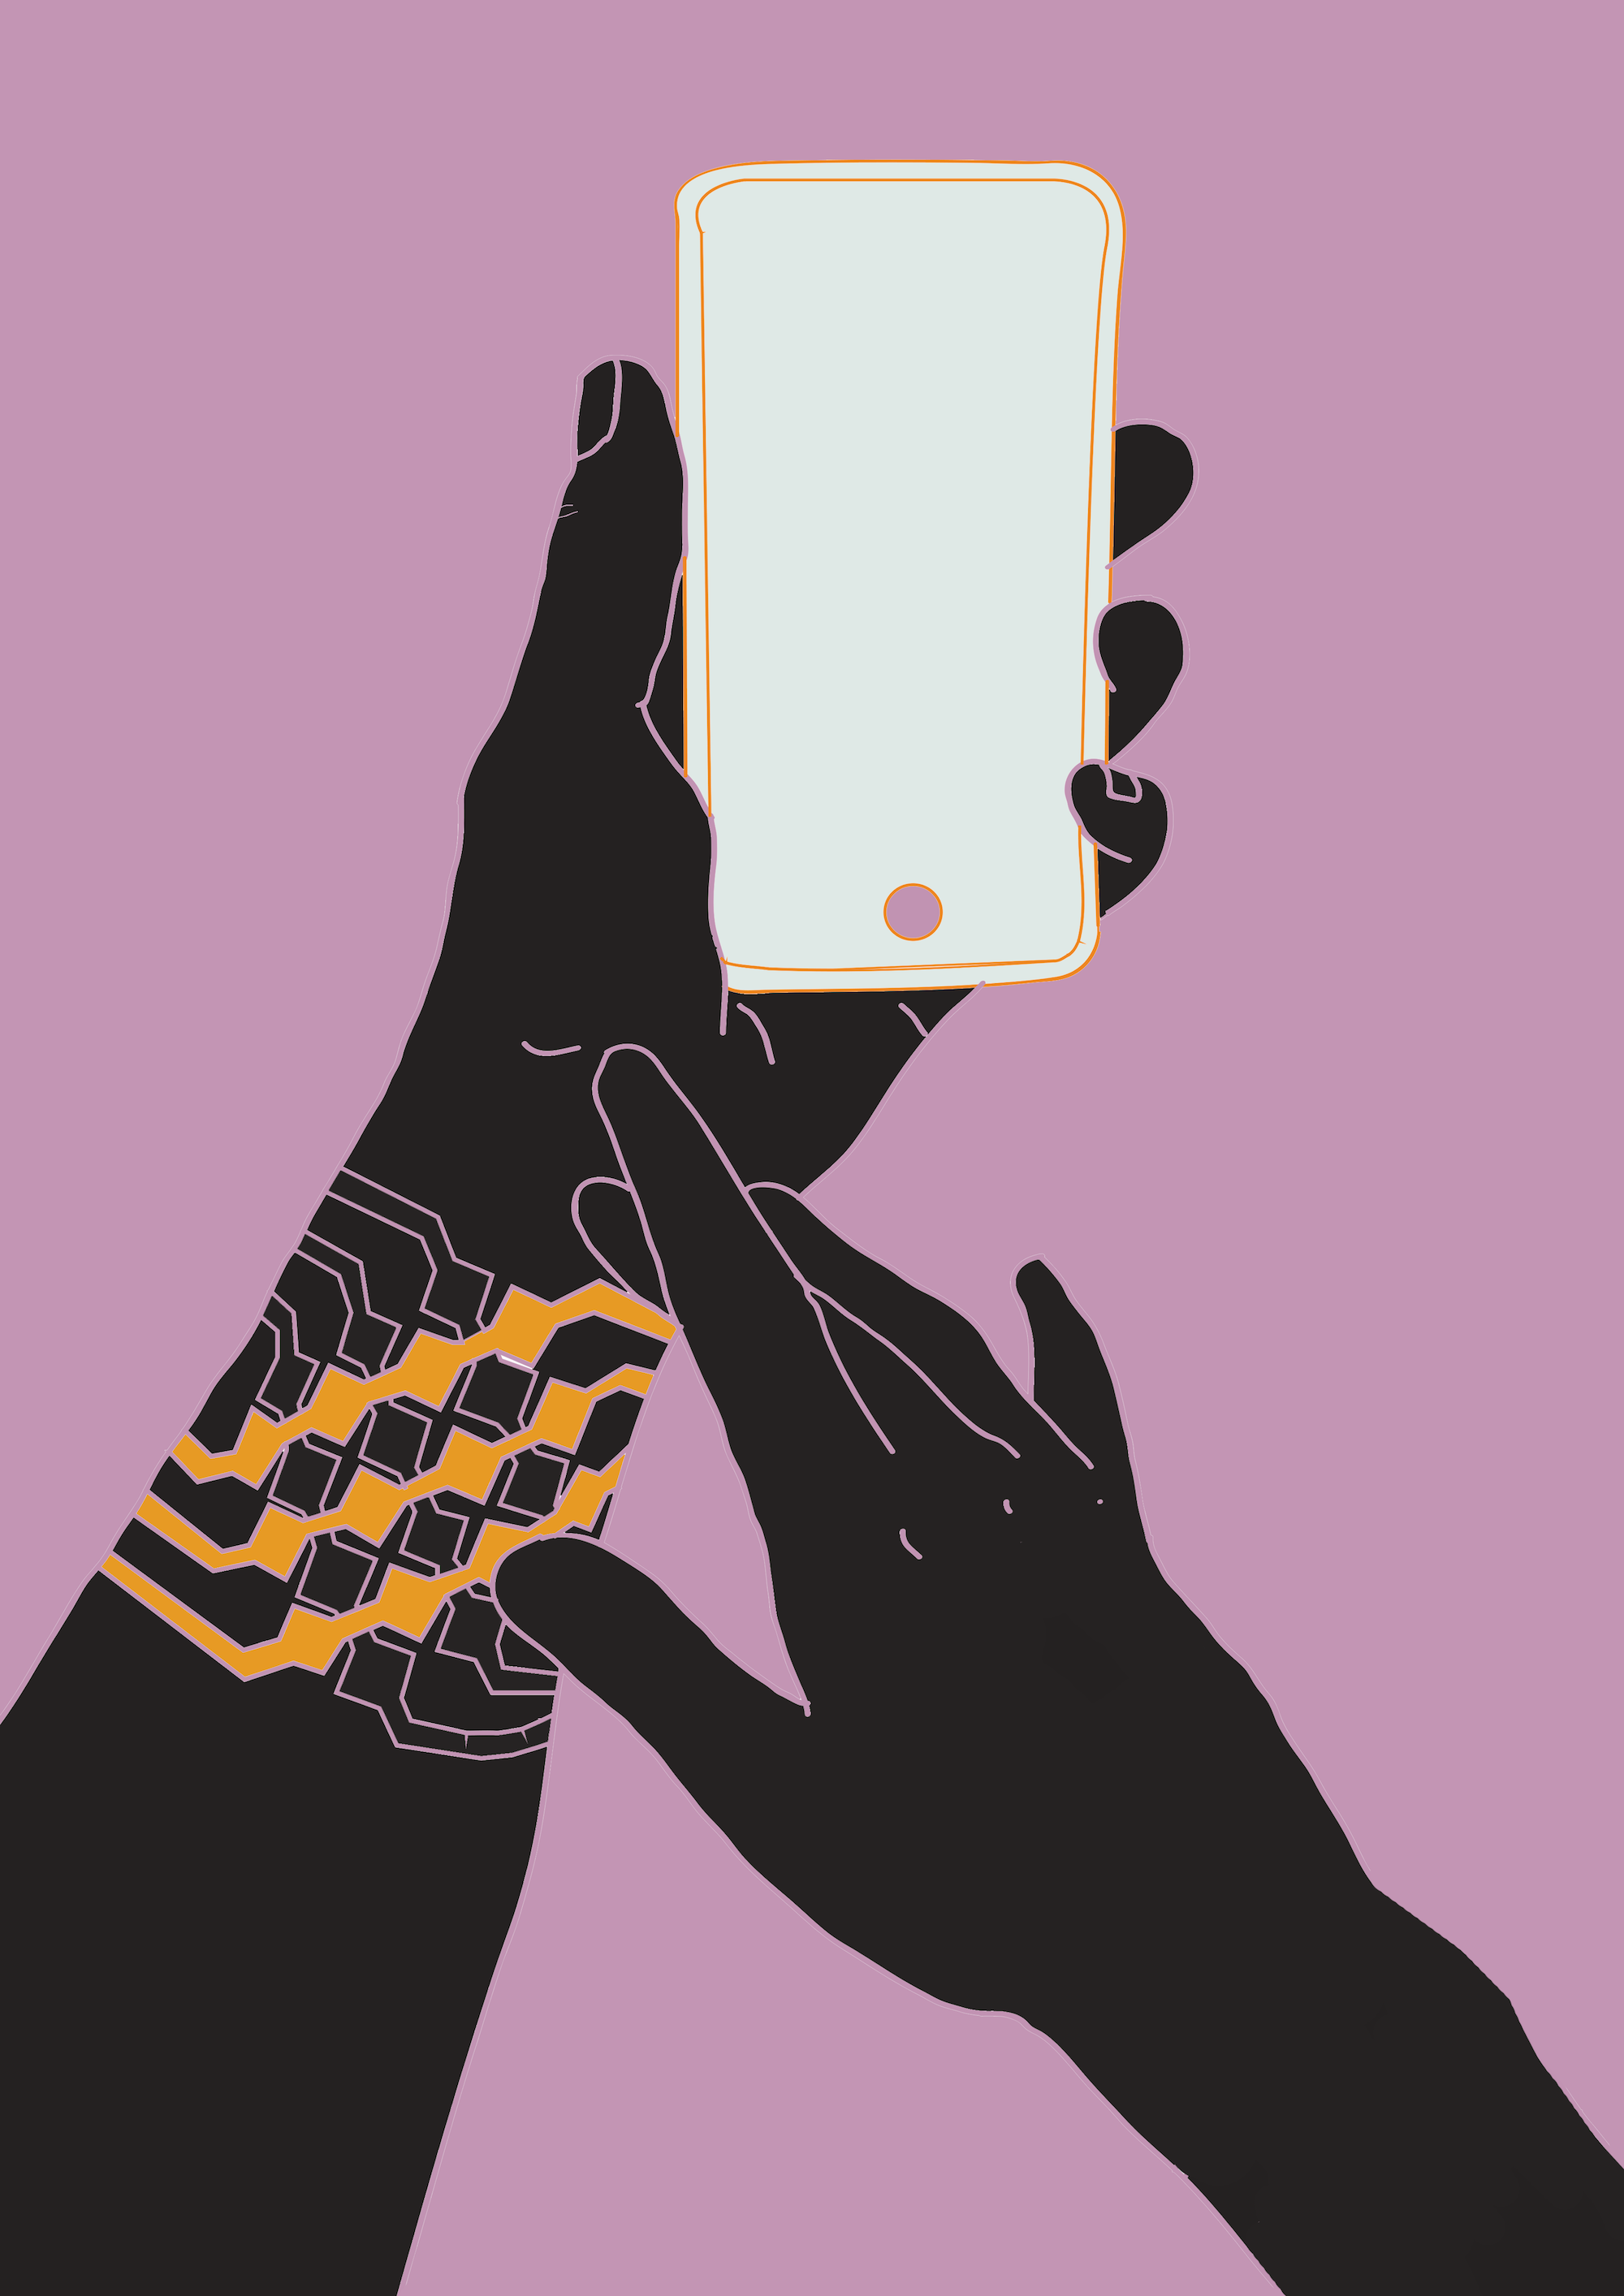 hand and phone